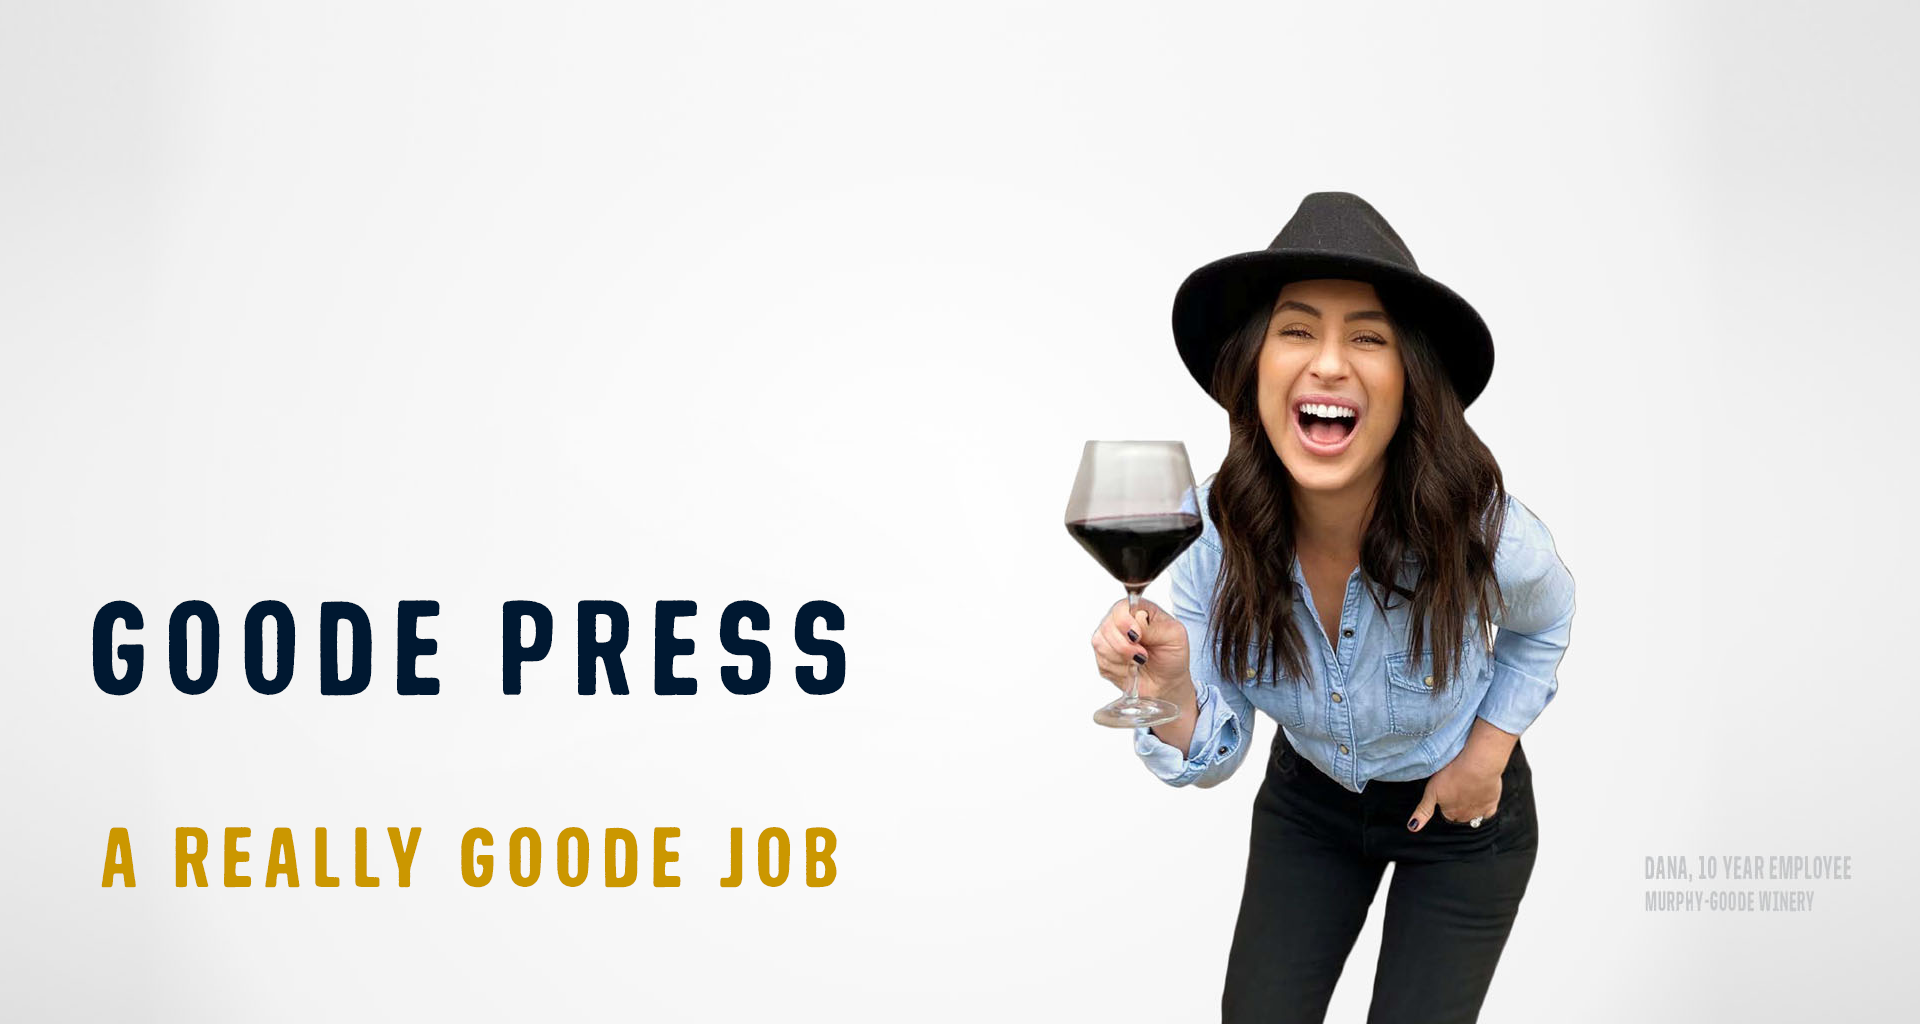 A Really Goode Job - Goode Press